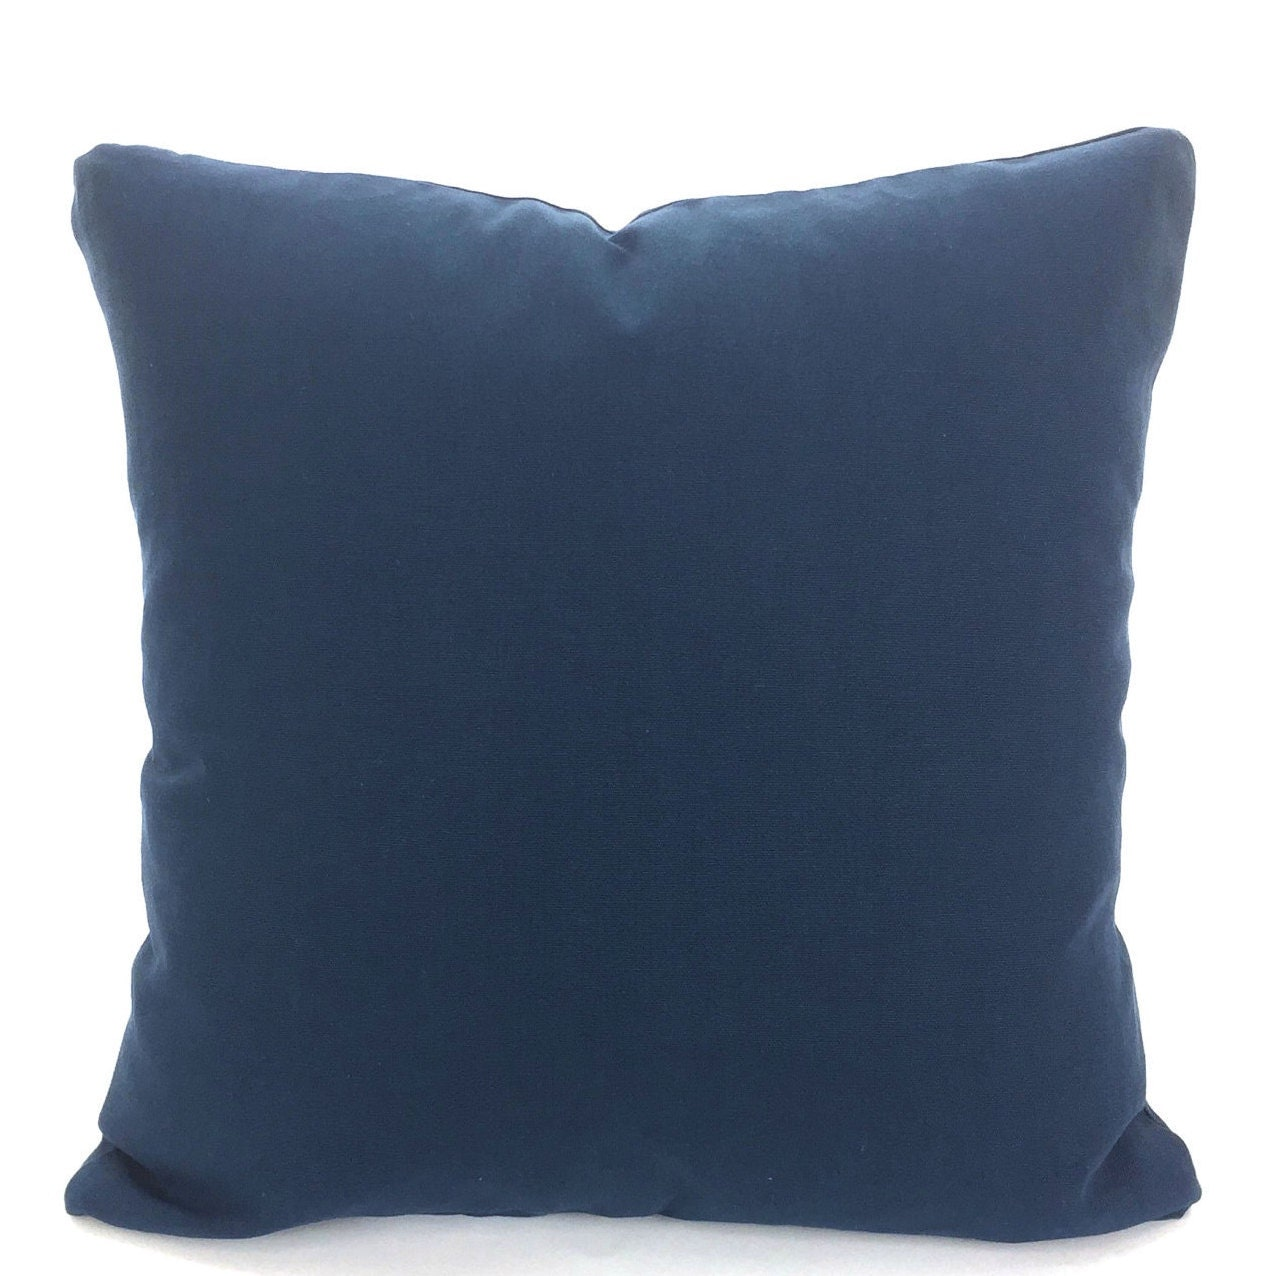 Decorative Pillows In Navy Blue : Solid Navy Blue Pillow Covers Decorative Throw Pillows